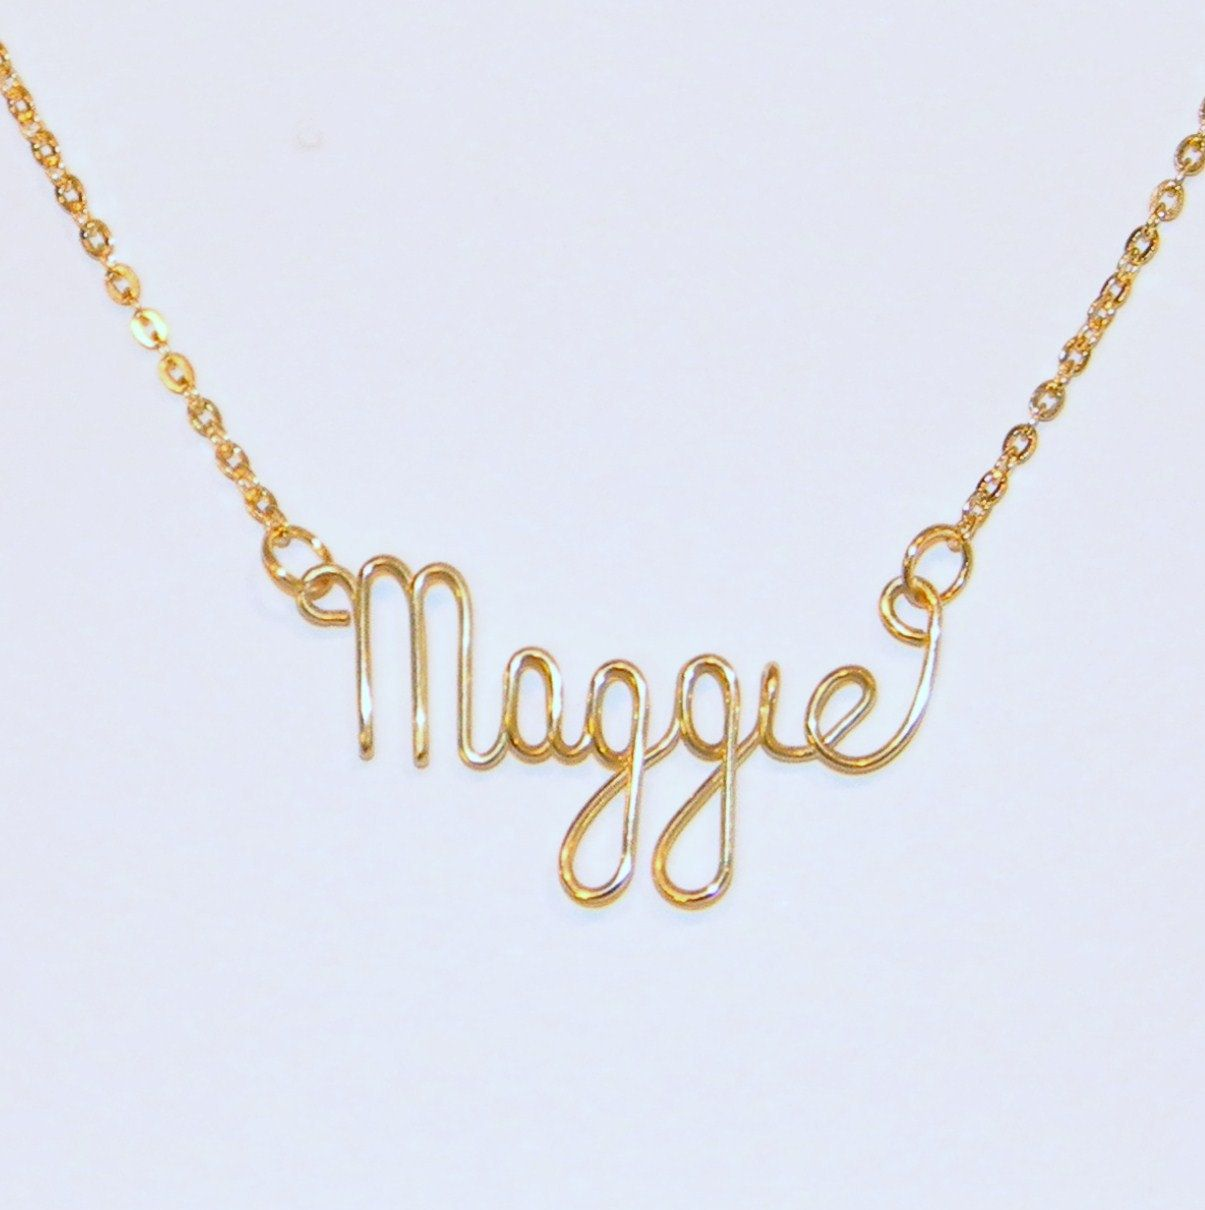 Handmade Personalized 14K Gold Wire Name Necklace - Personalized ...